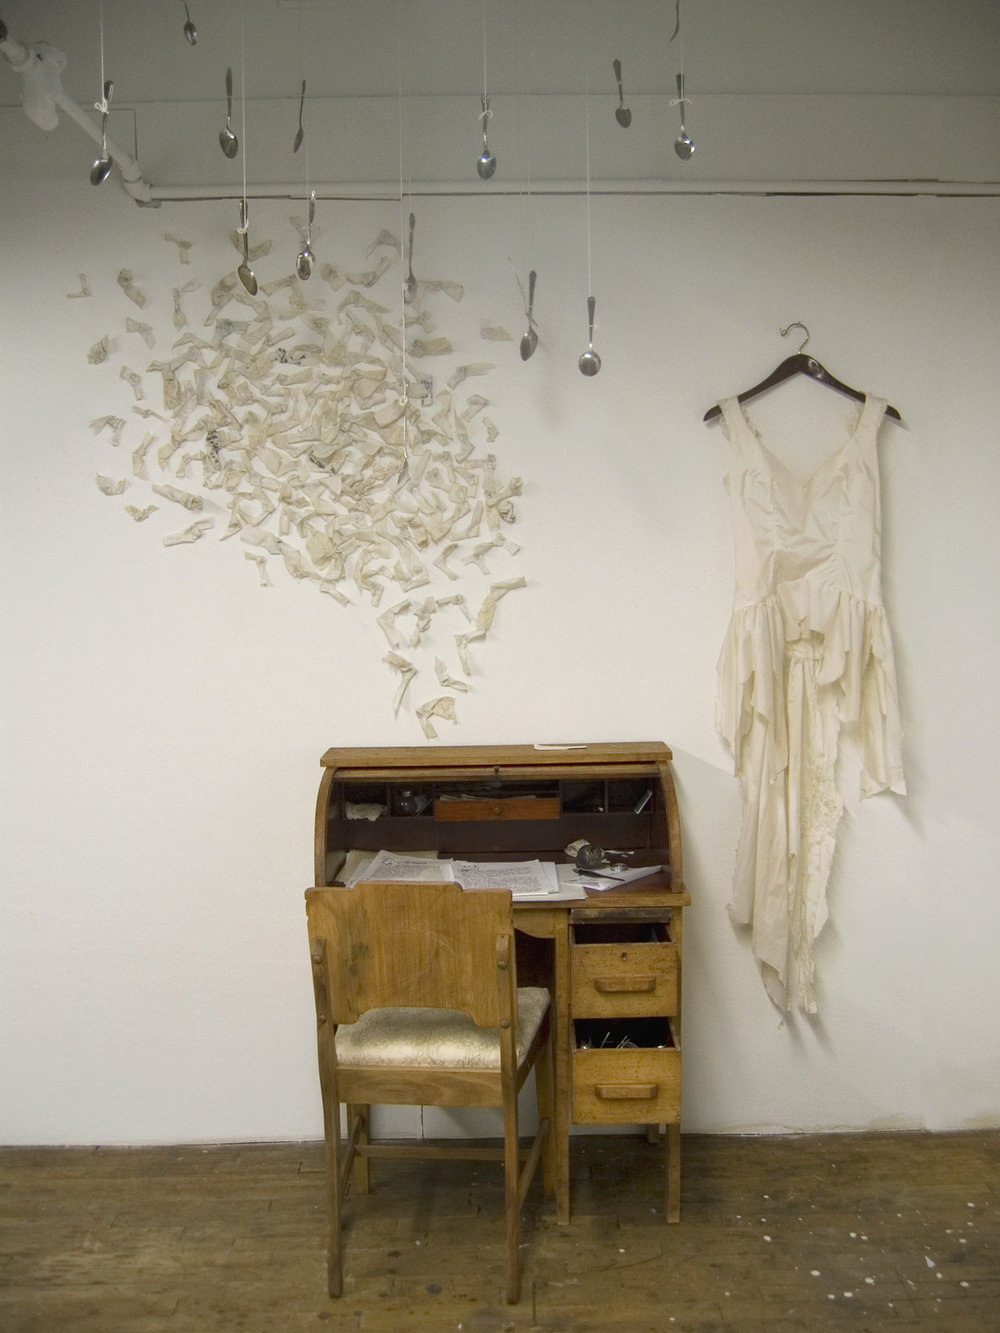 Seshat's desk with gossiping swarm   , 2008, desk, fabric, objects, 7.5 h x 8 h x 3 h feet